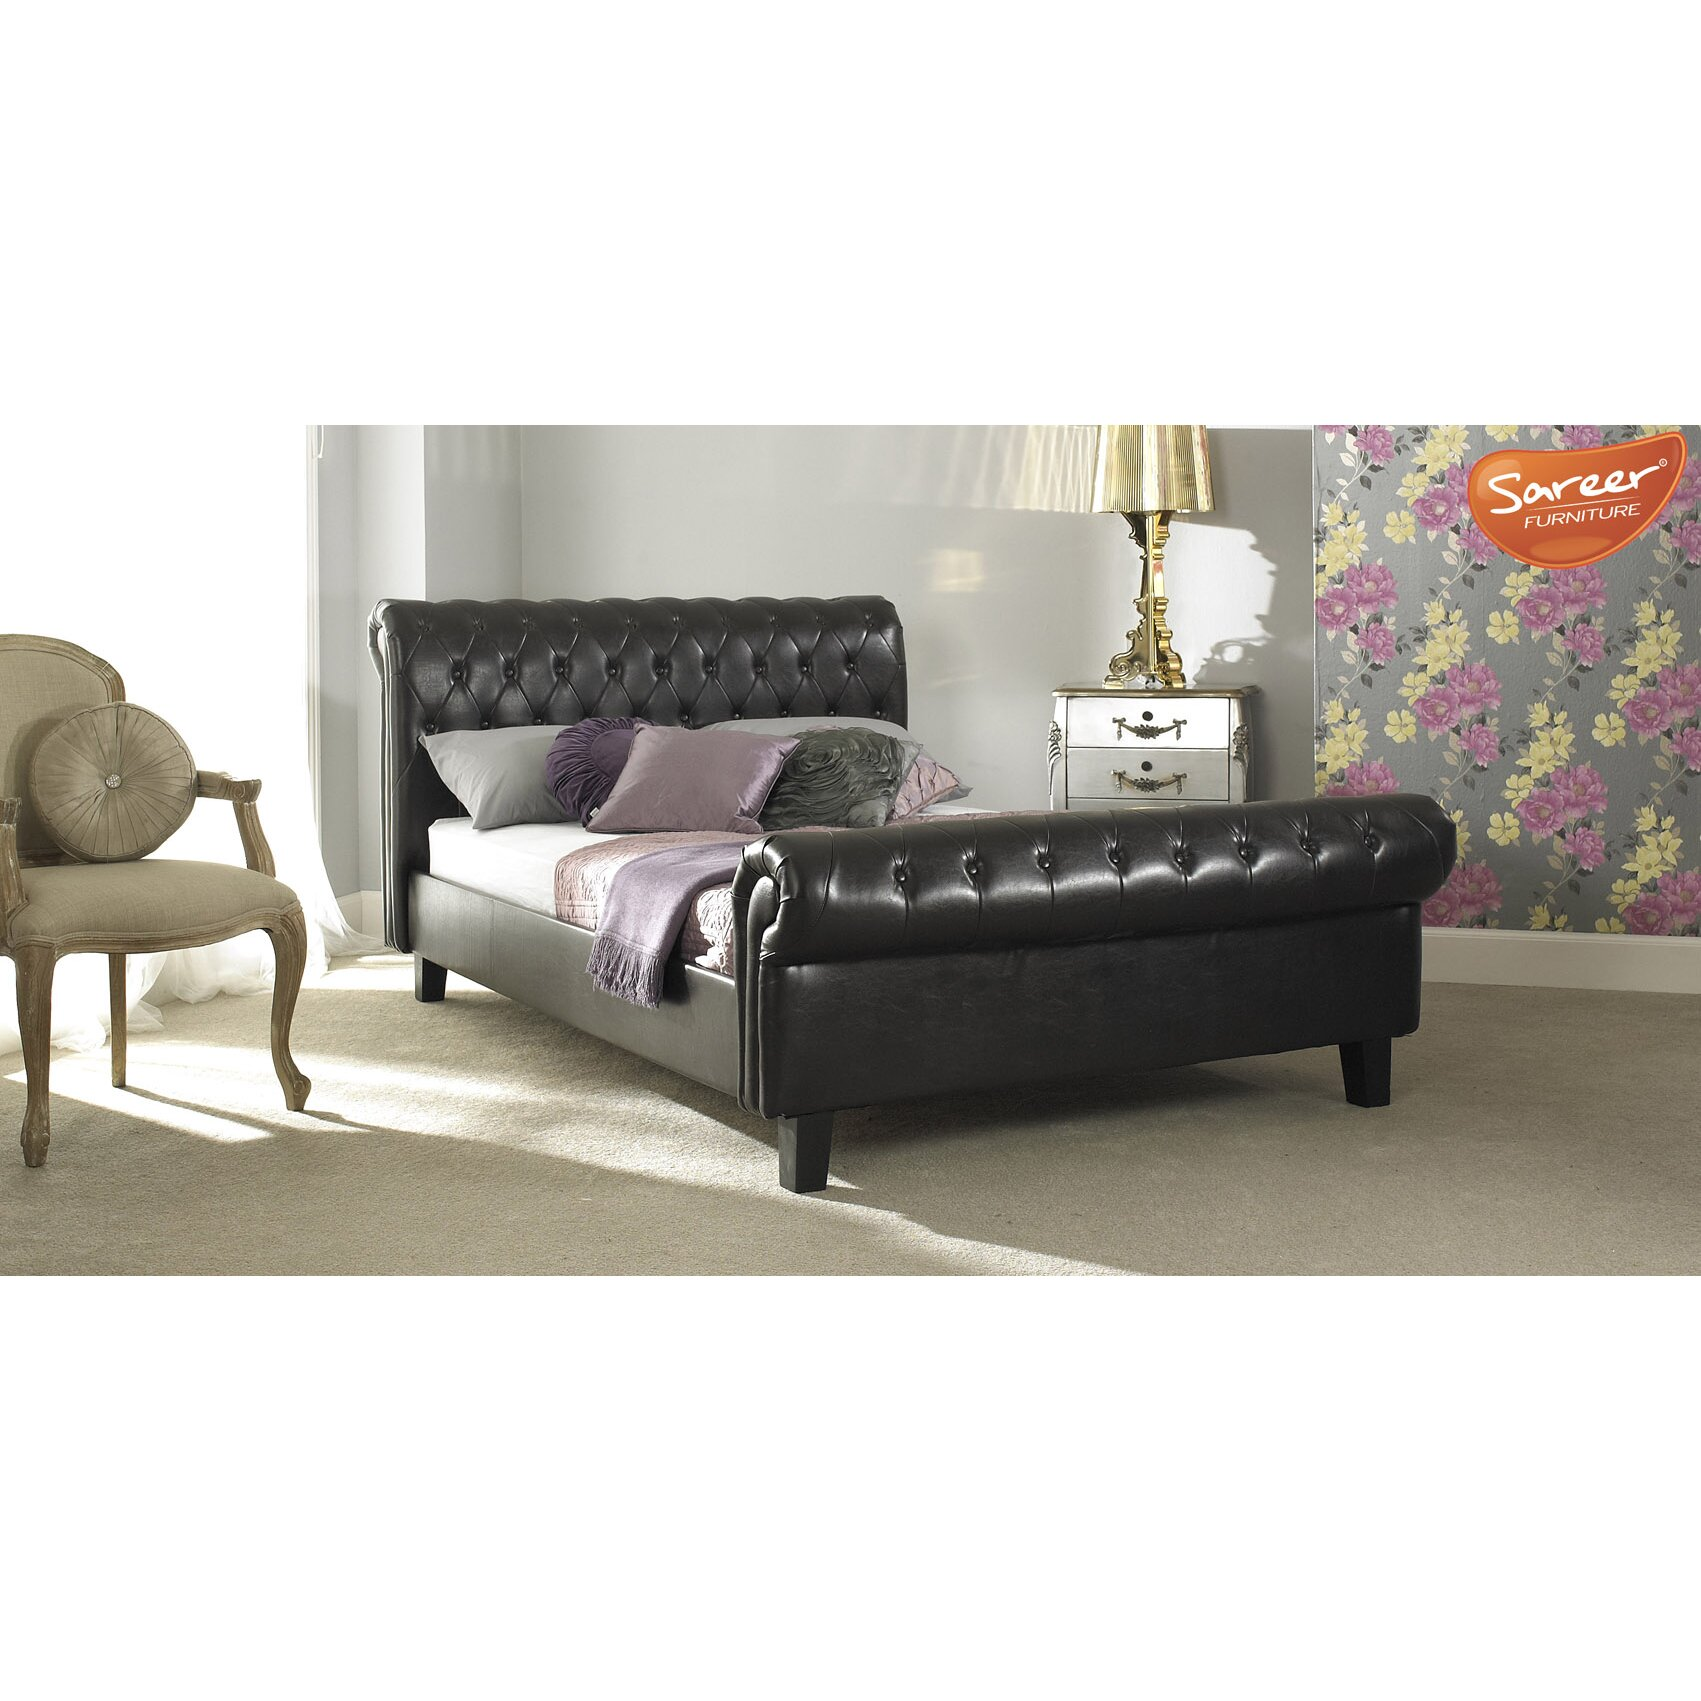 Pleasing Bed Shop Sofa Bed Shop Hartlepool Interior Design Ideas Clesiryabchikinfo